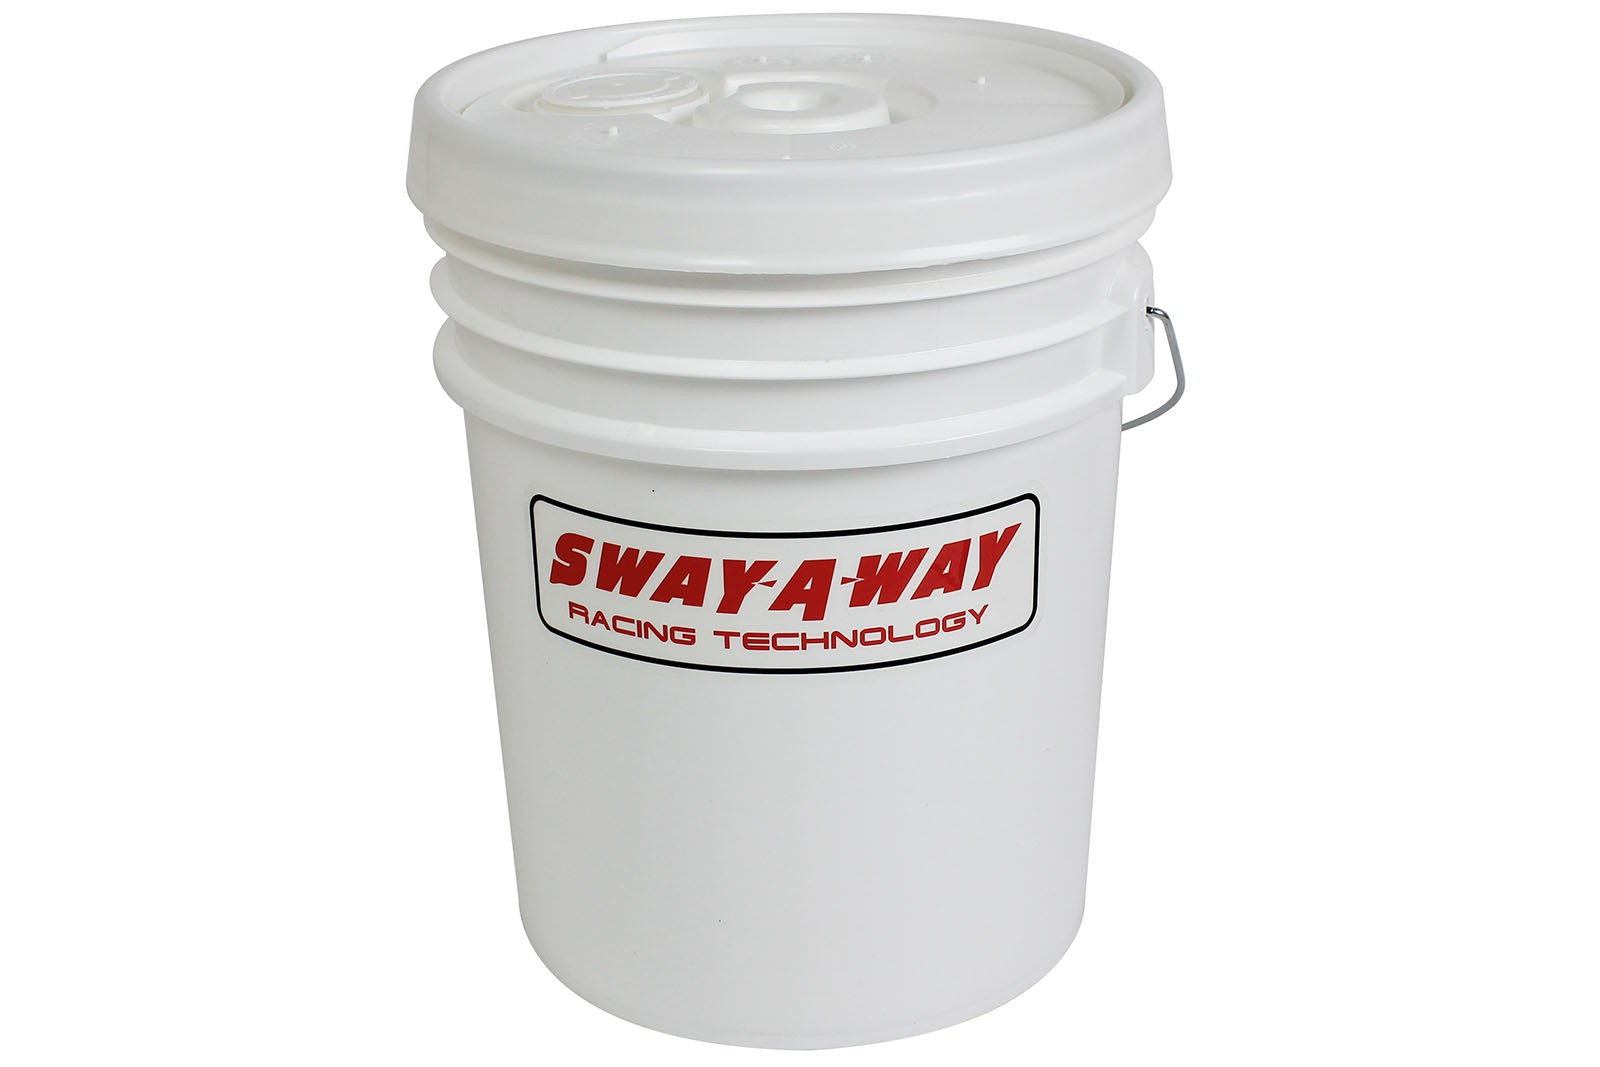 aFe POWER 50010-SP32 aFe Control Sway-A-Way Shock Oil, 5 Gallons